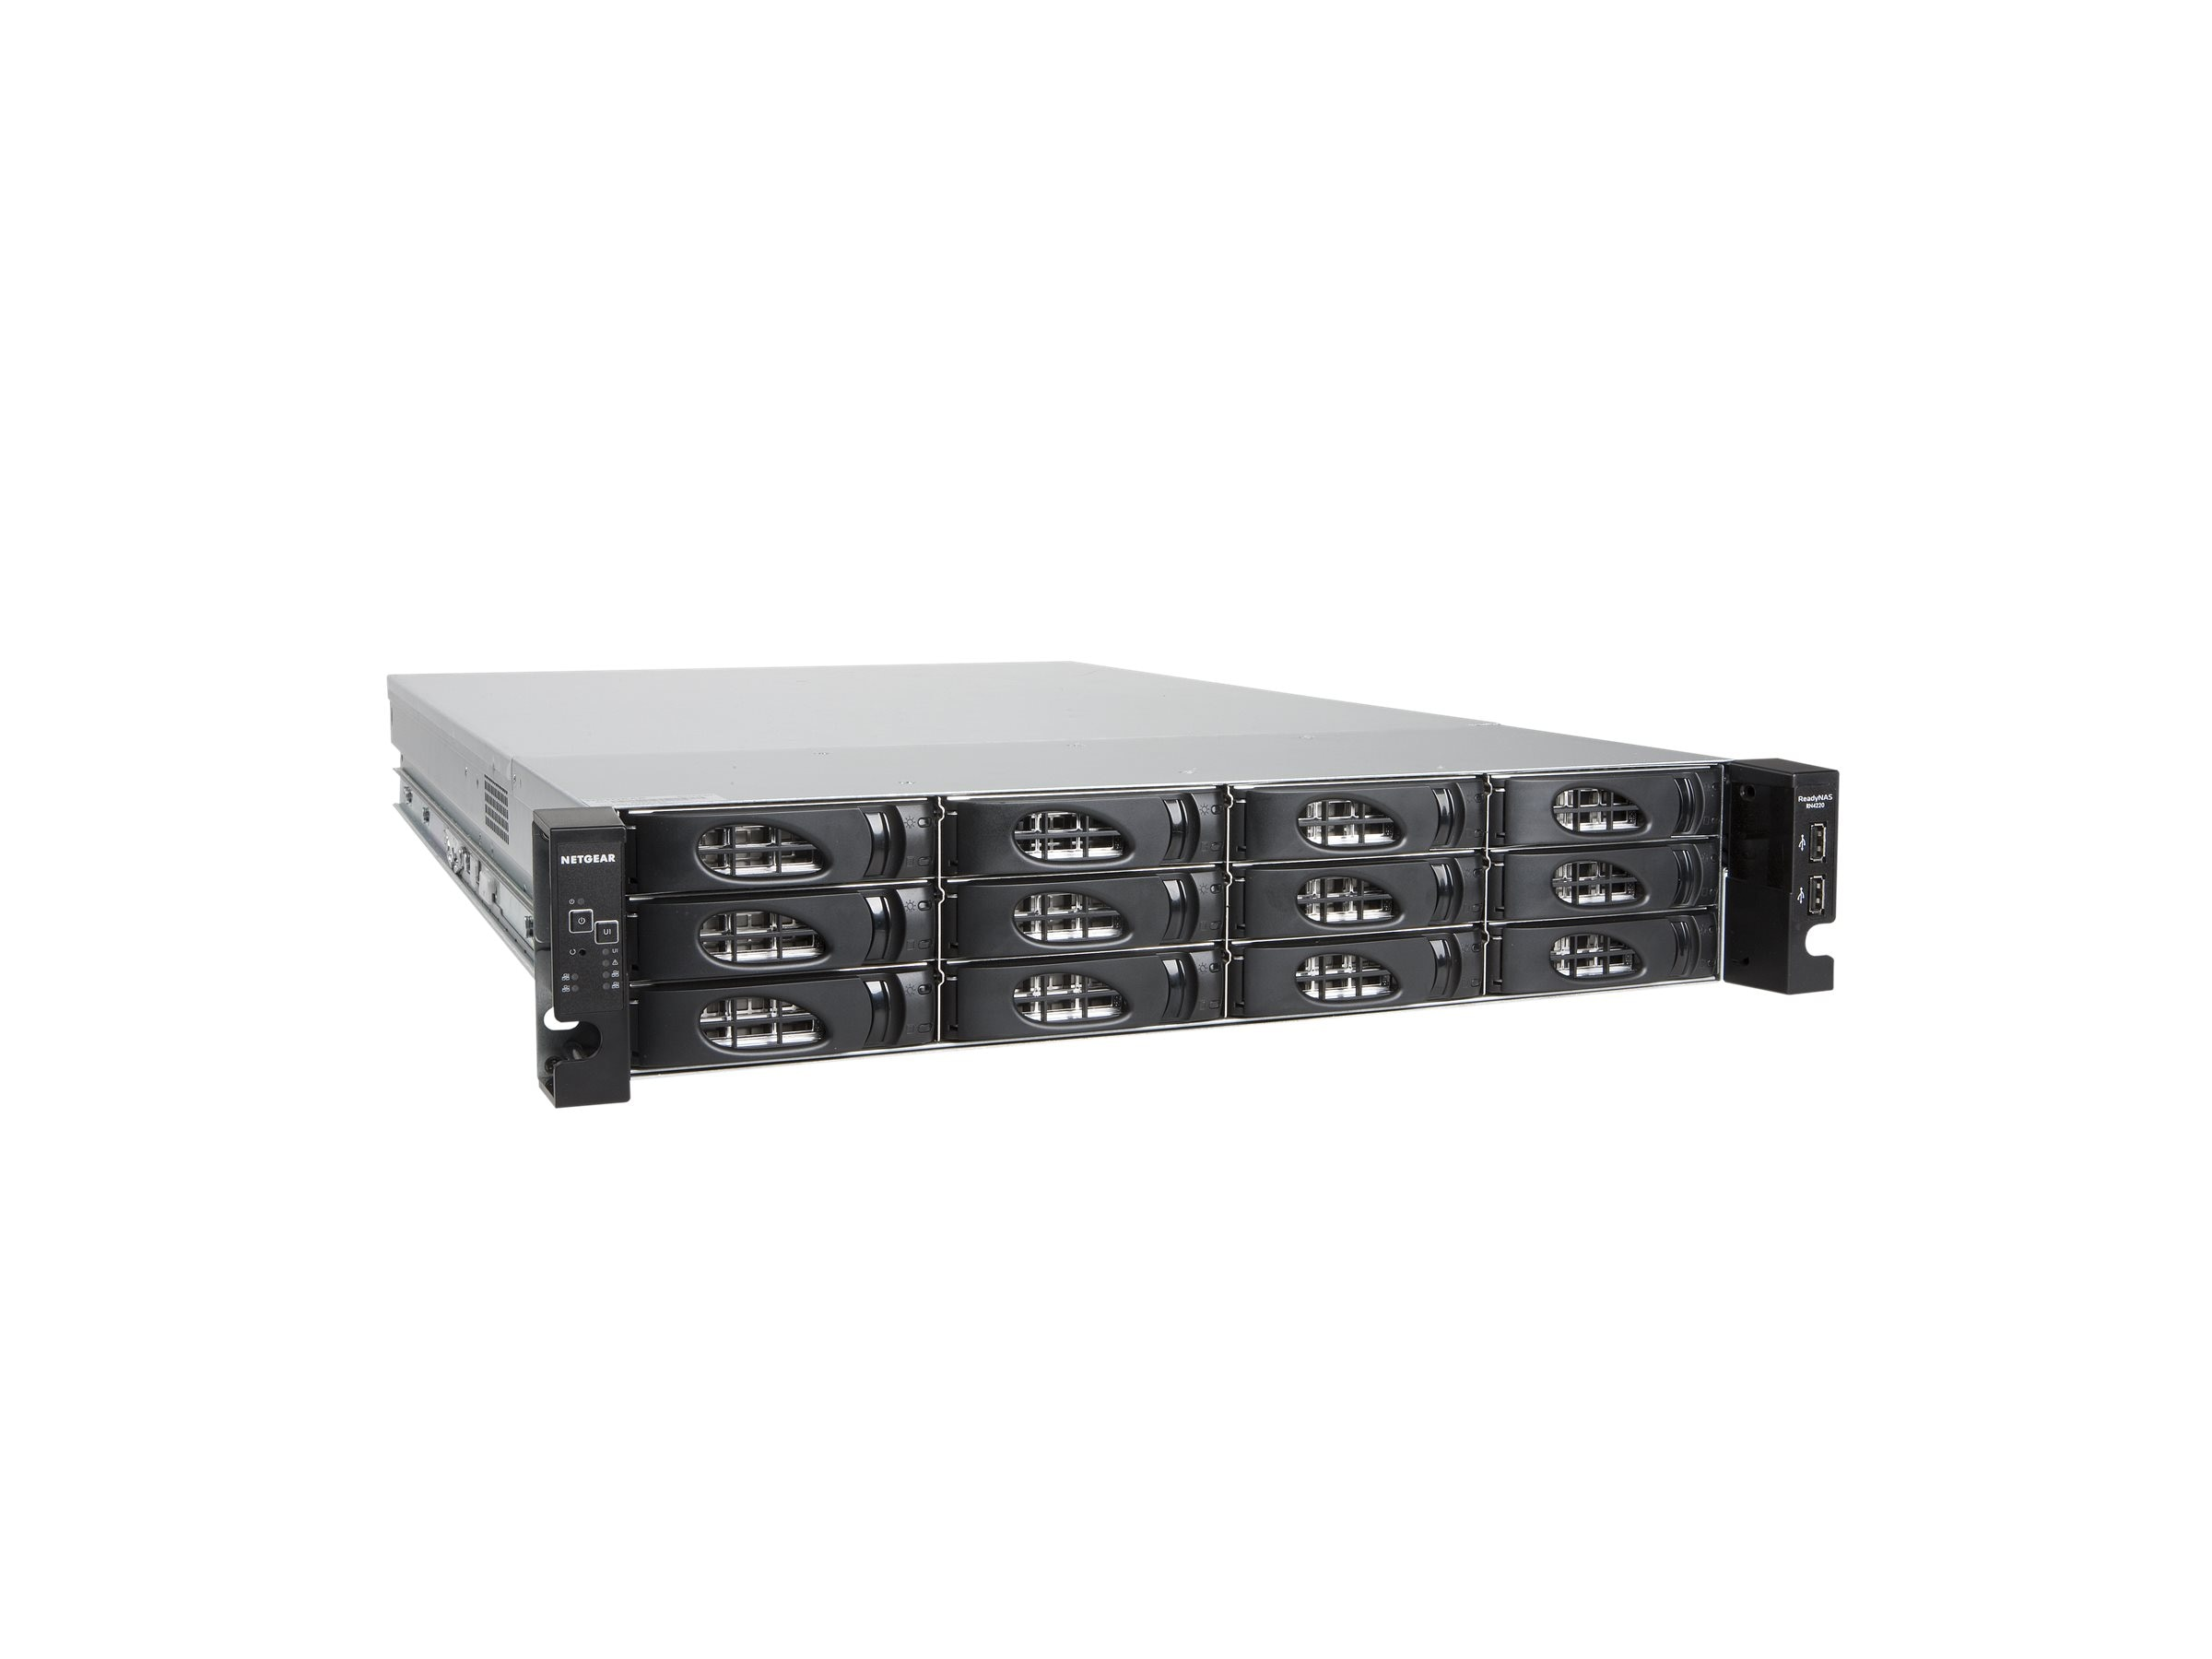 Netgear 24TB ReadyNAS 4220X NAS Server